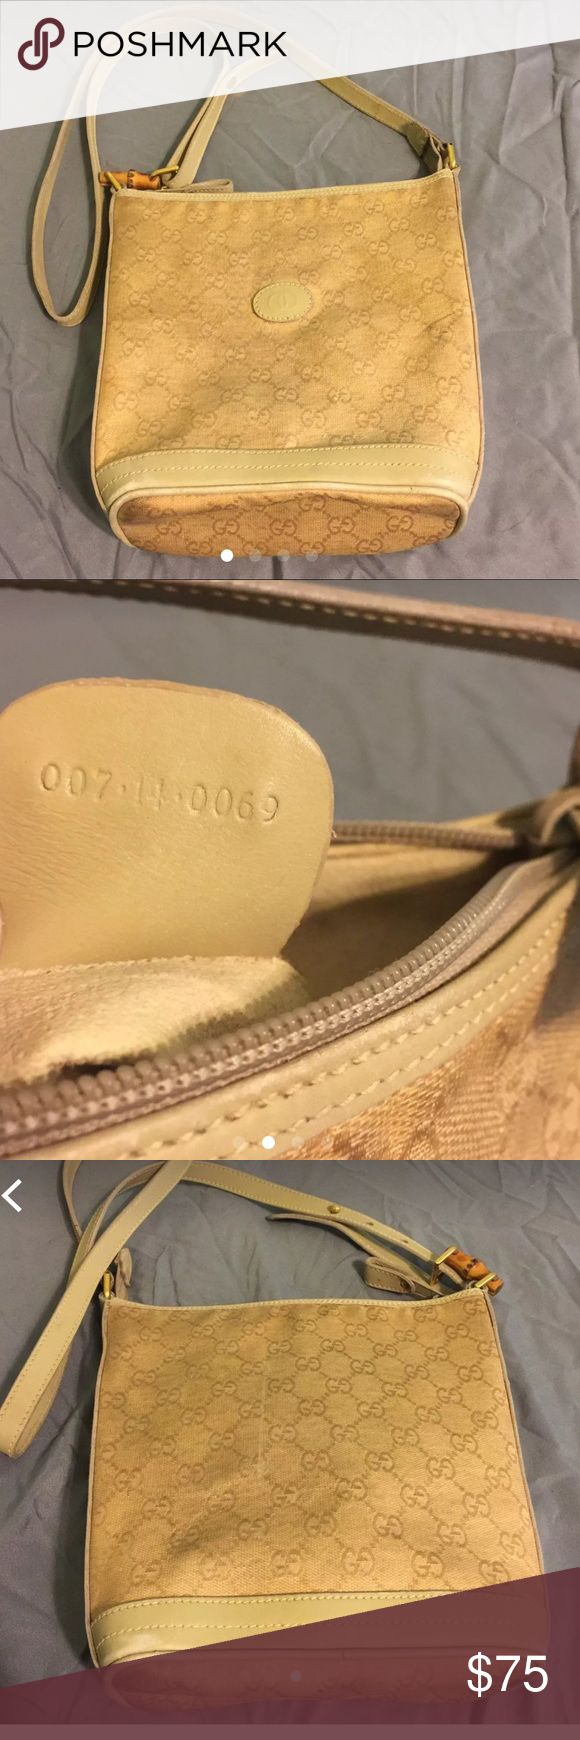 Vintage Gucci crossbody Authentic. Very dirty. Will need someone who knows how to rehab it. Leather is a little stiff. Priced low to match condition. Trade value is higher. This is a steal for someone who rehabs purses. If it doesn't sell at this price I'll be getting it cleaned on my own and raising what I am asking. Gucci Bags